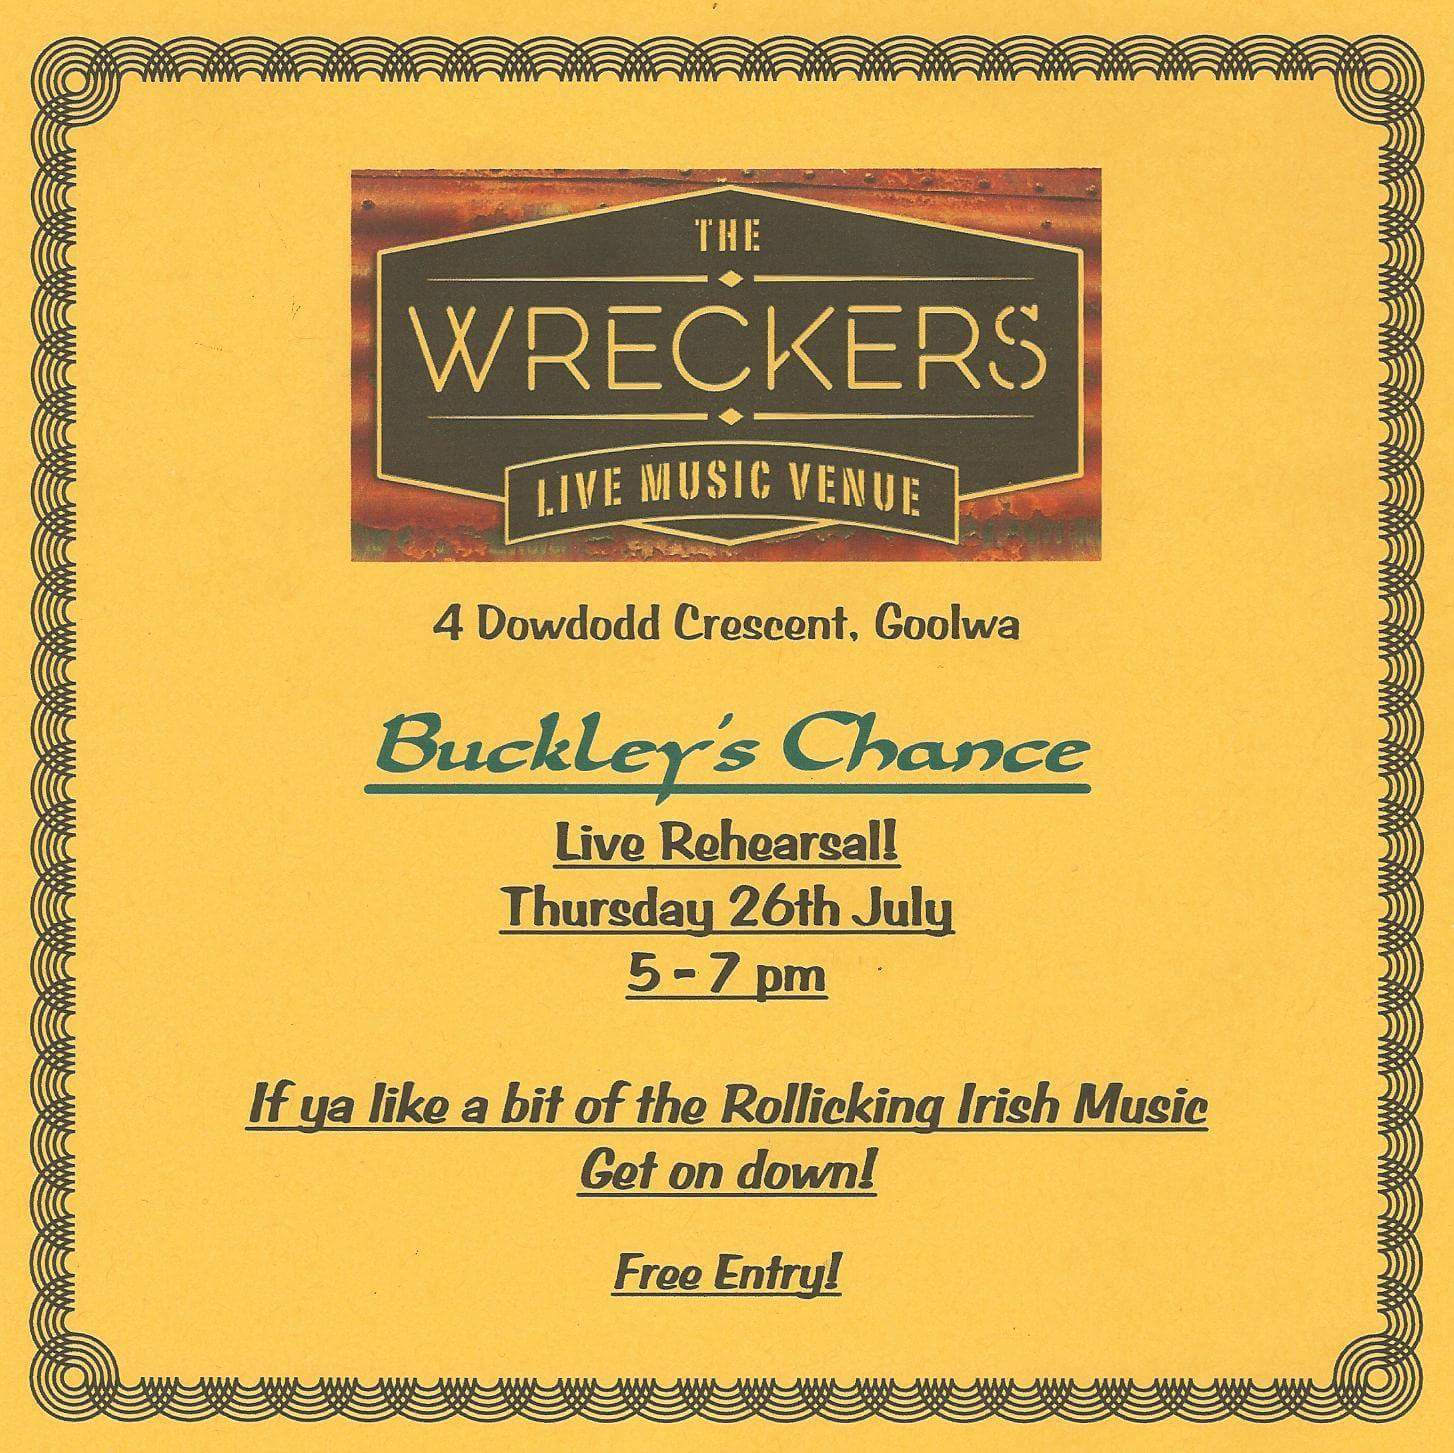 Buckleys Chance